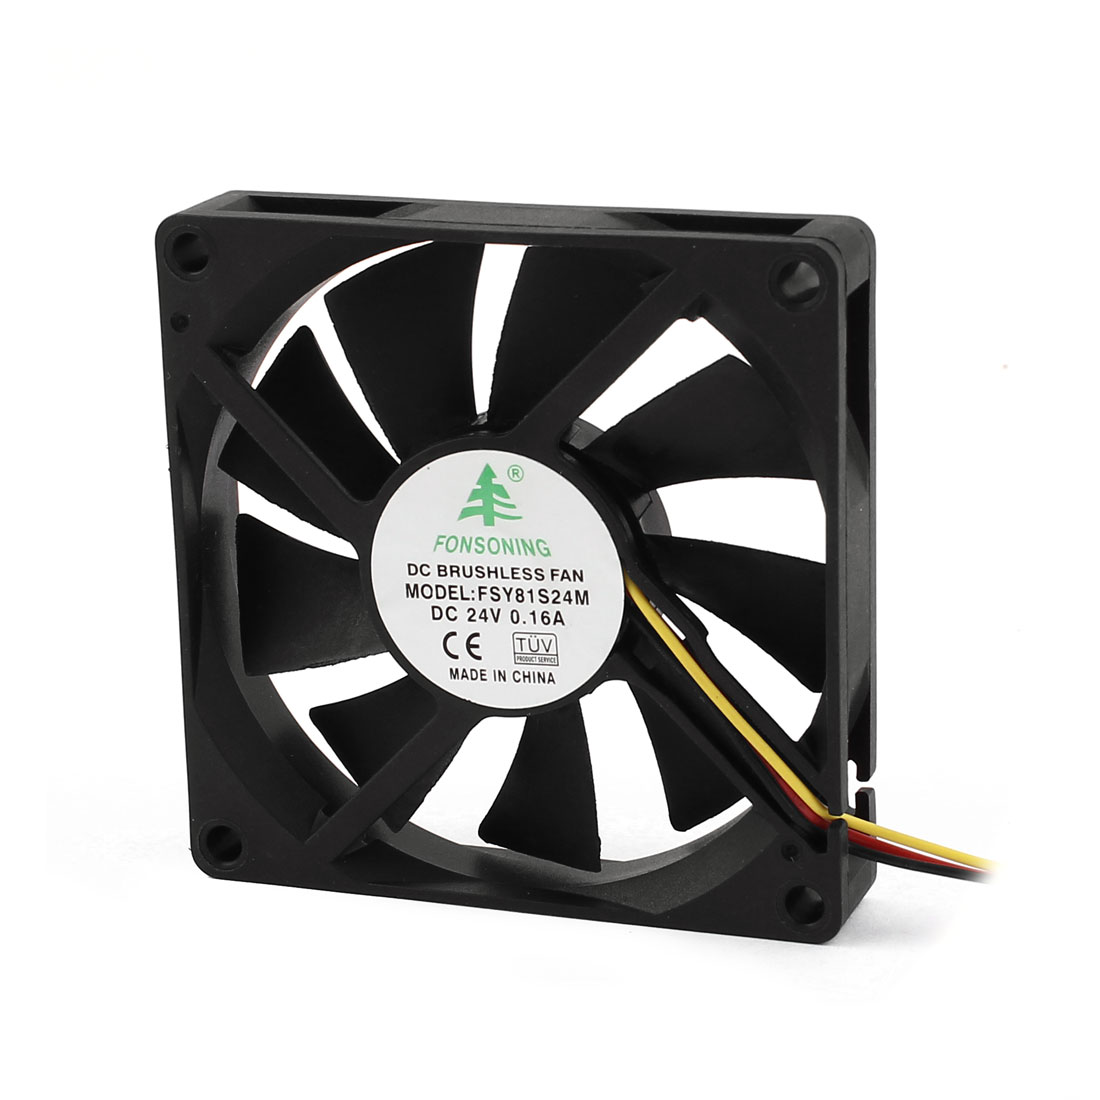 Computer Brushless DC Cooling Fan 80mm 3-terminal Connector 9 Flabellums DC 12V 0.16A